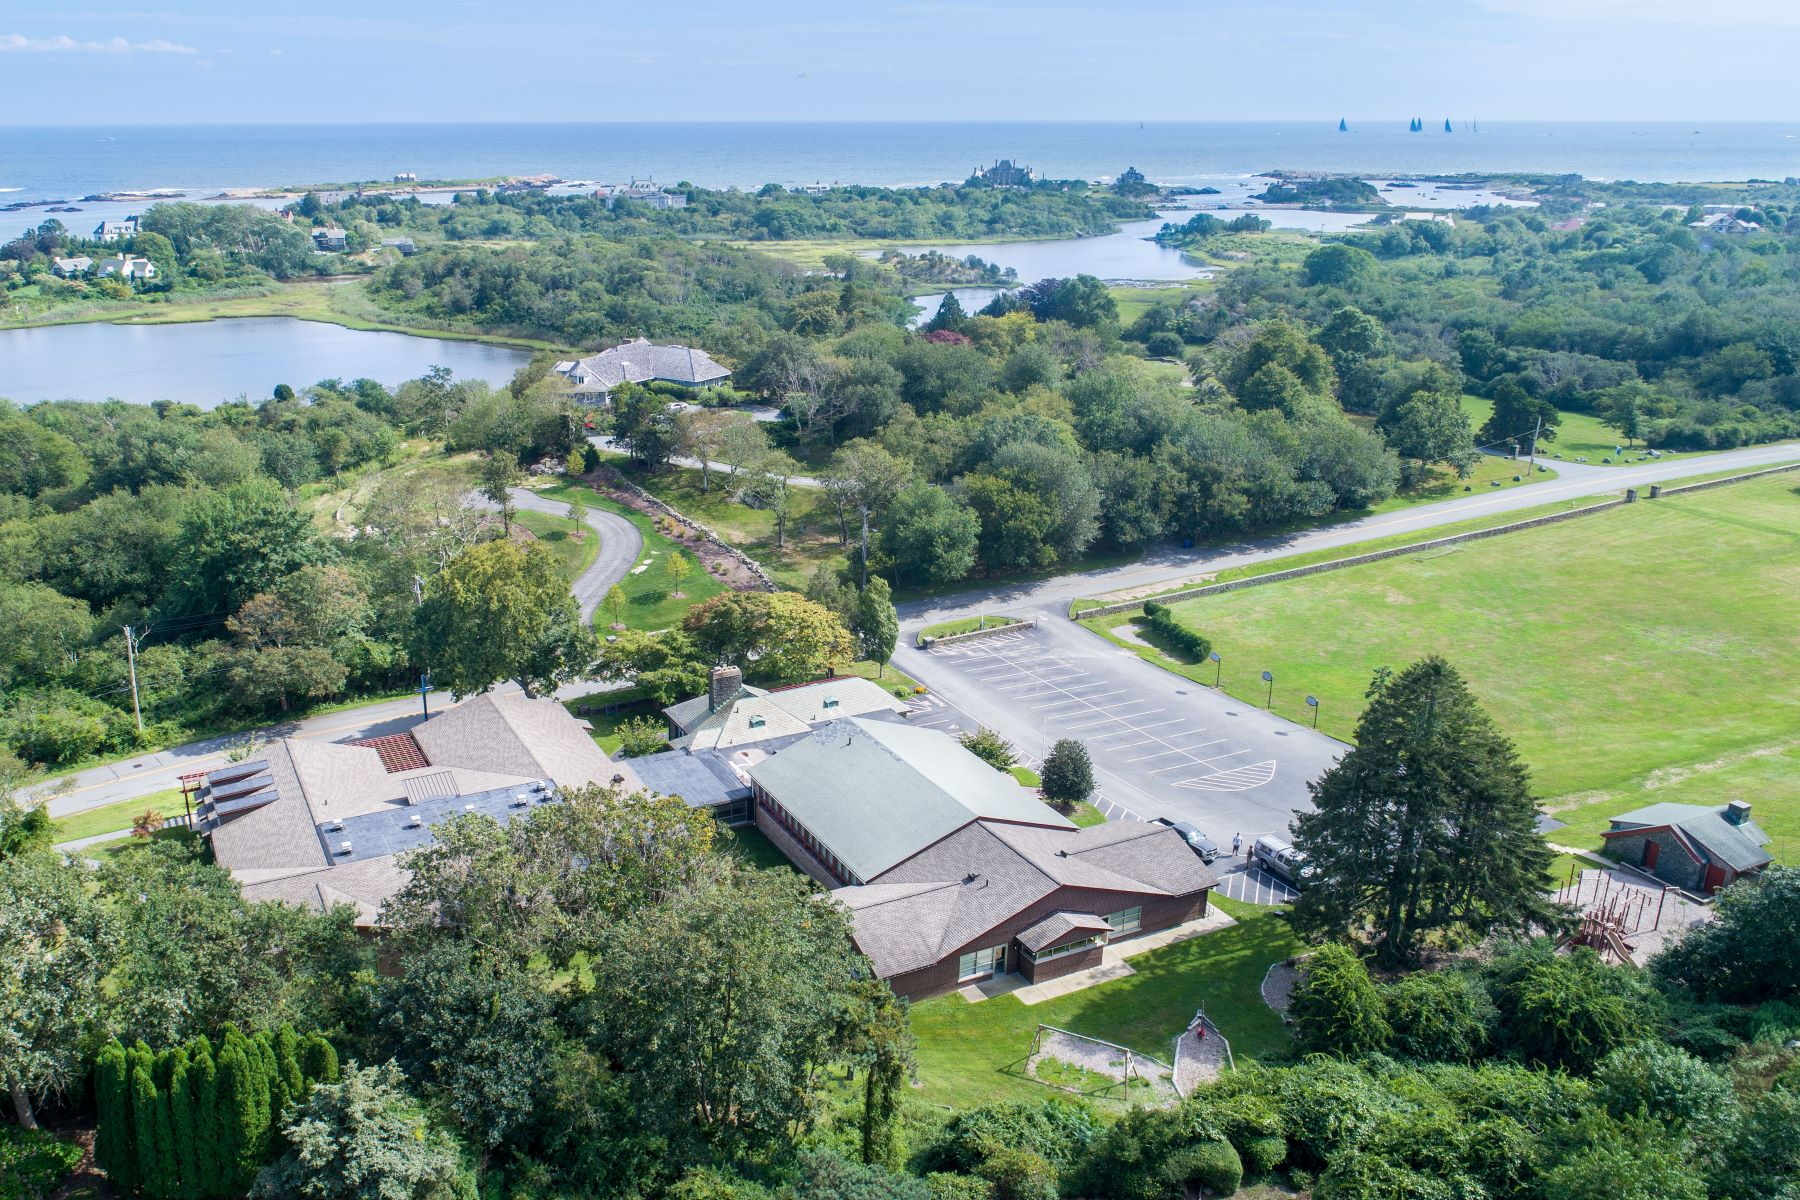 Land for Sale at Cluny School 75 Brenton Road Newport, Rhode Island 02840 United States